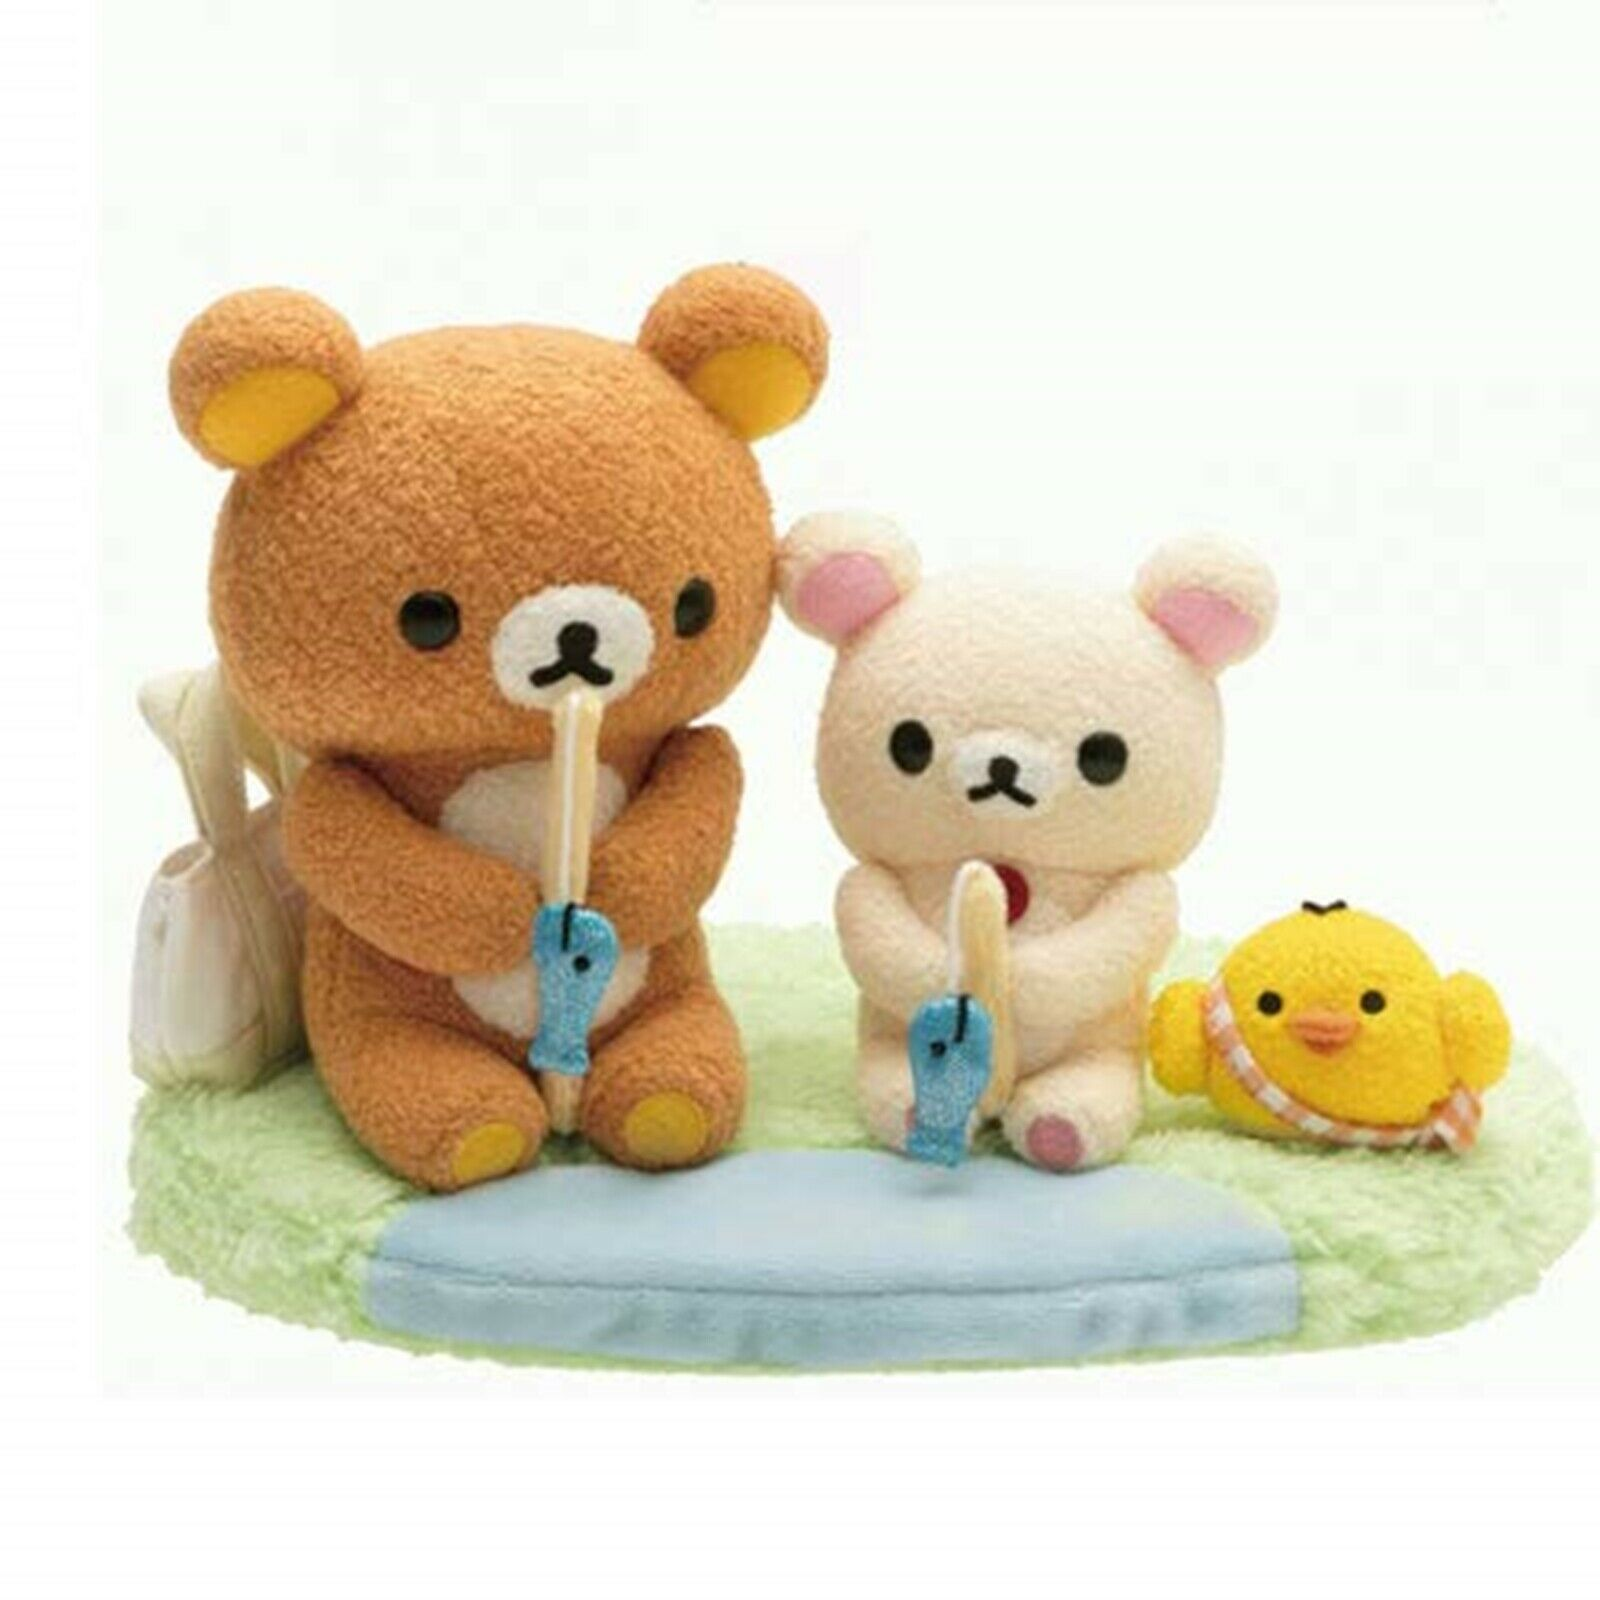 Primary image for Rilakkuma Netflix Original Series Rilakkuma and Kaoru Plush Doll Fishing